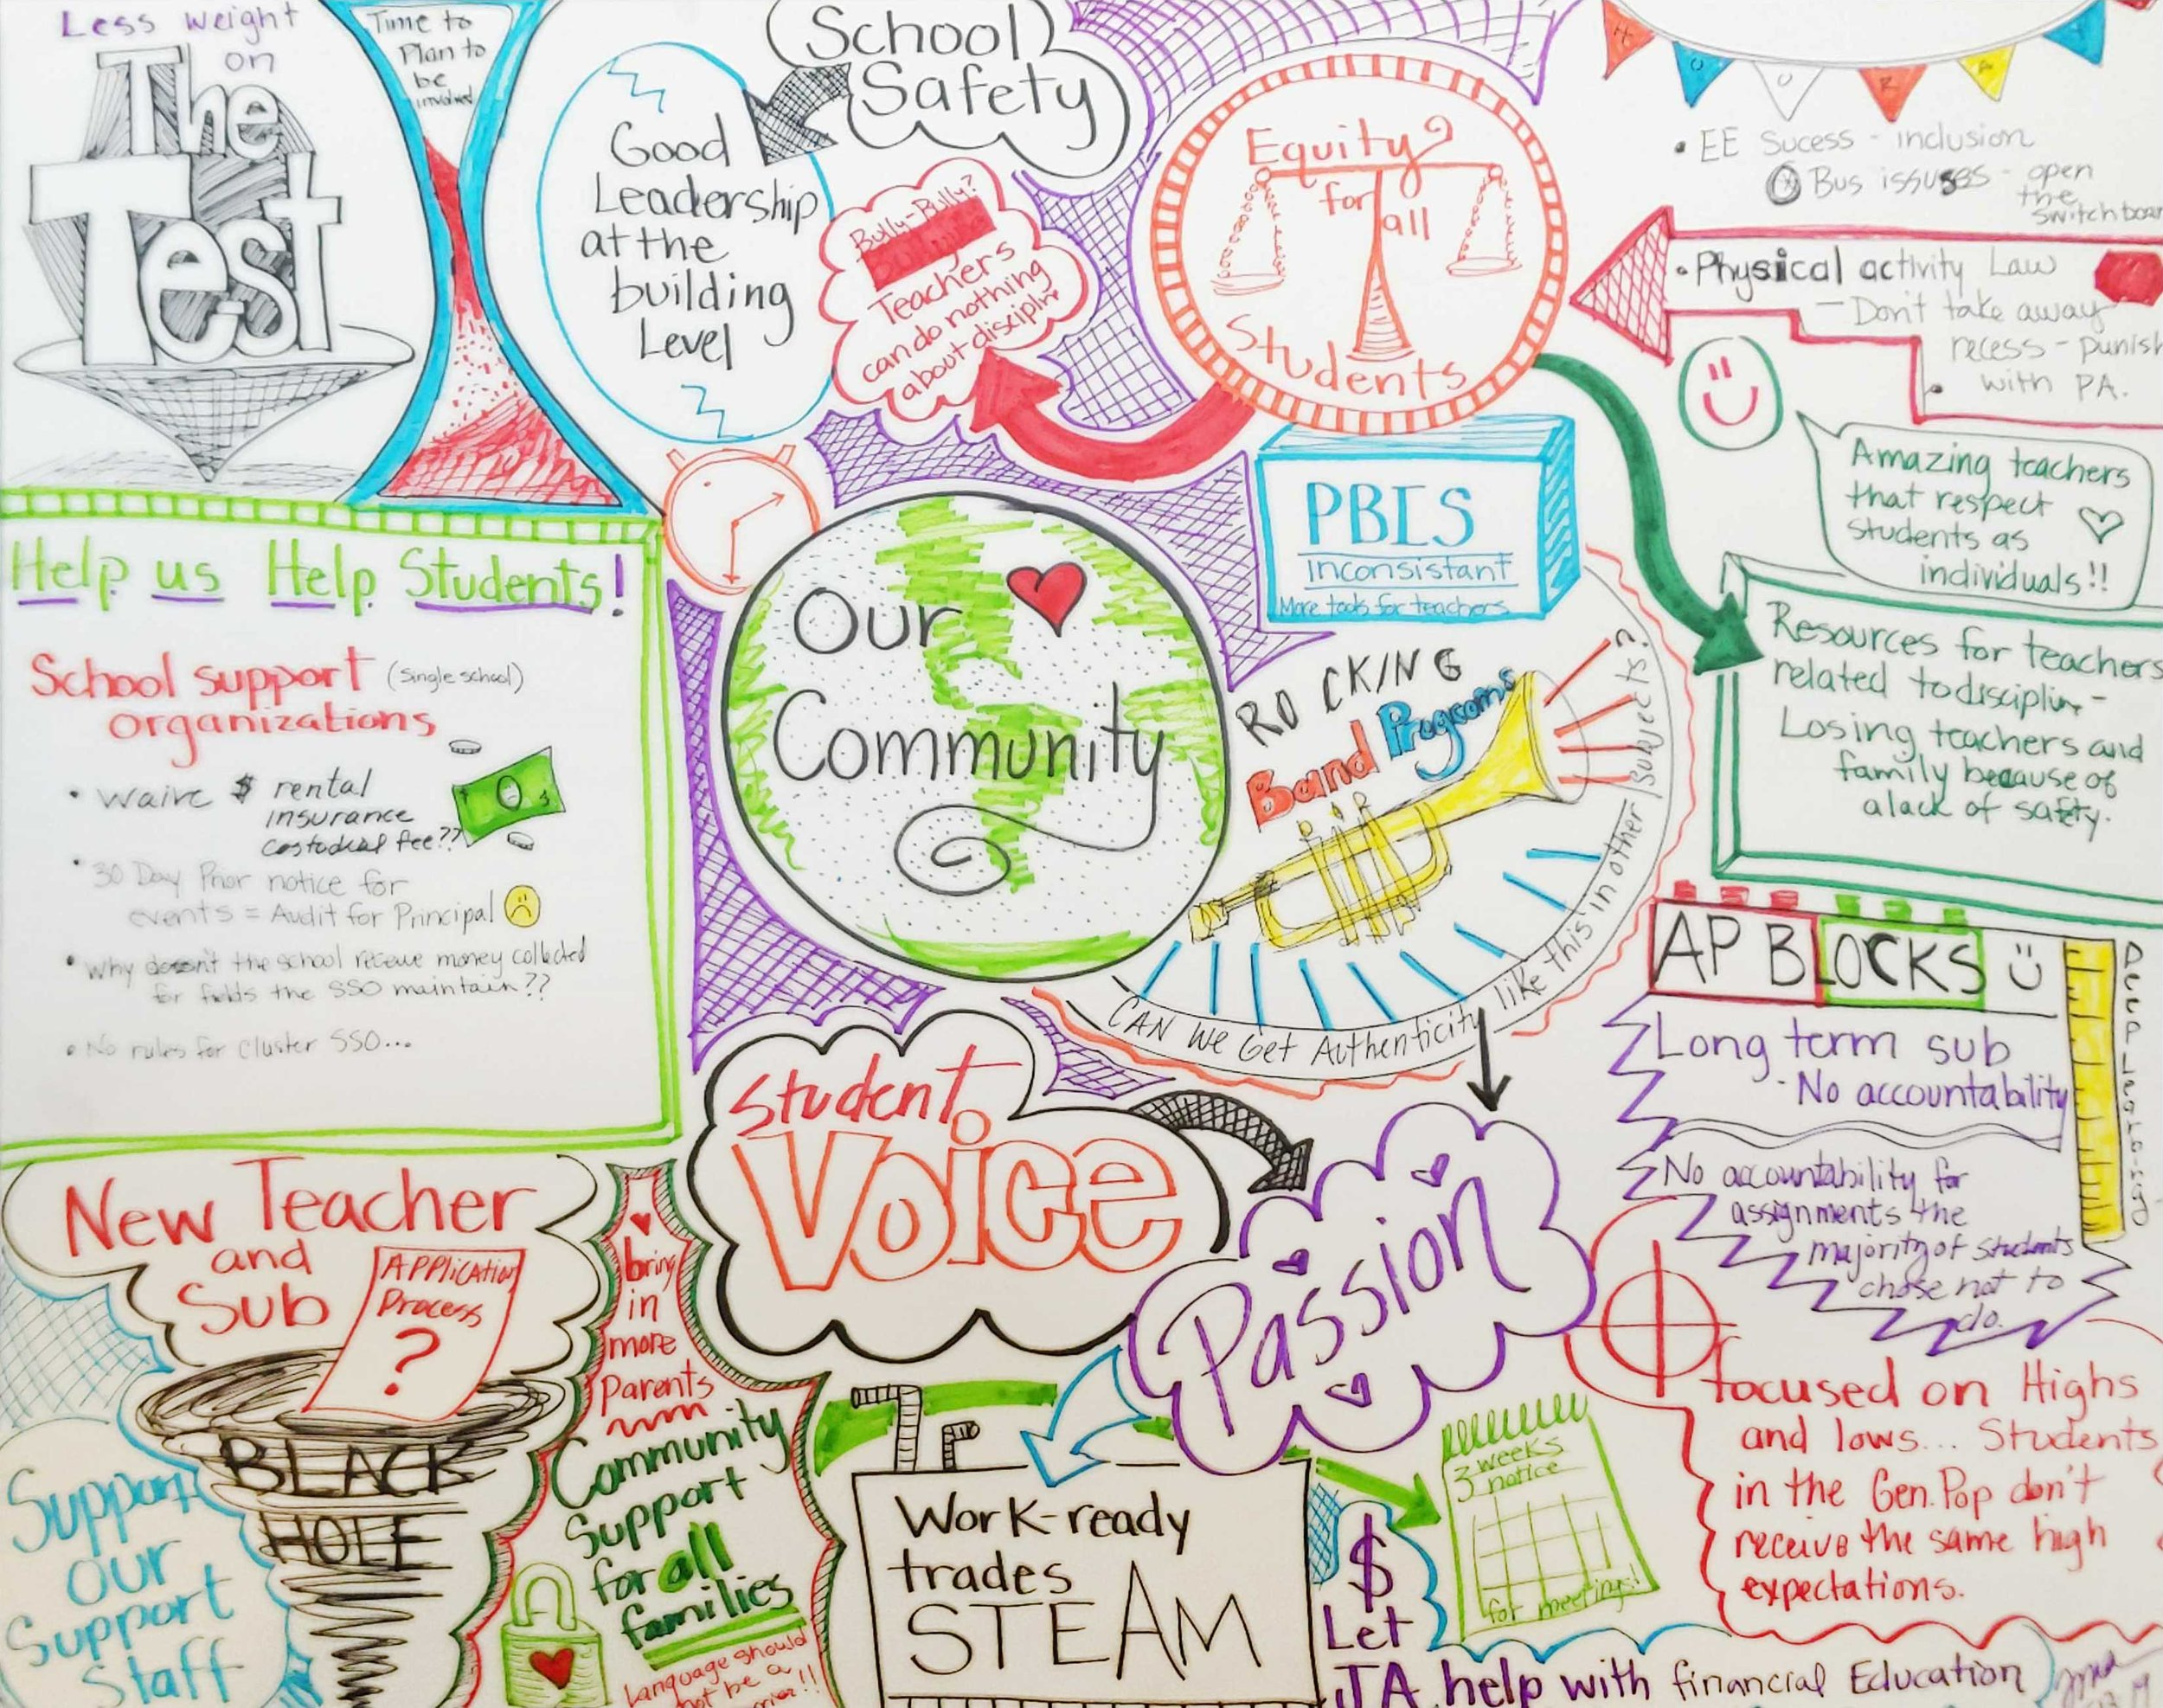 The community session of the Listen In meeting at Virtual School on May 13, as sketched by Julie Atkinson.